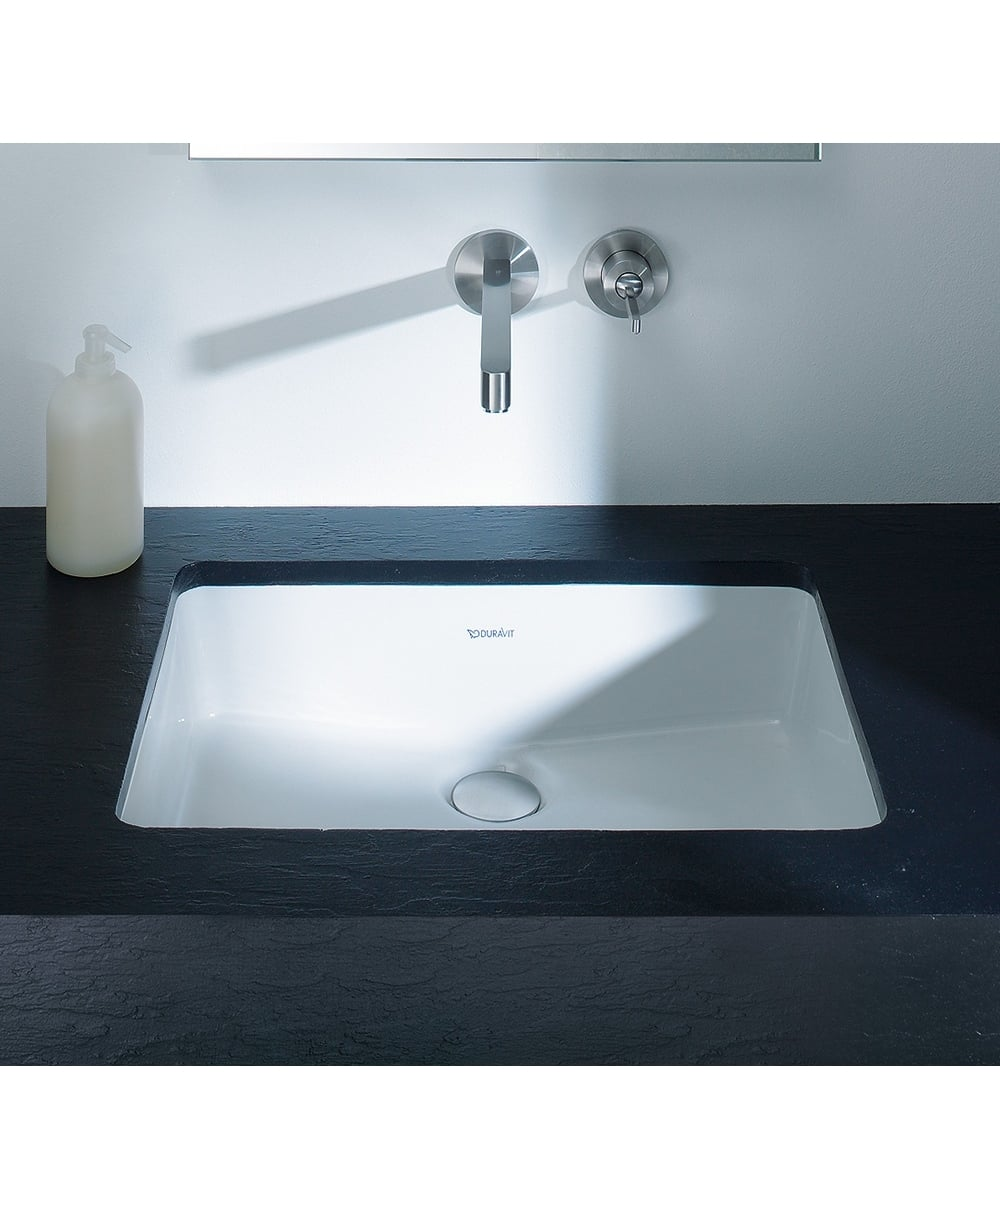 https://www.bathroomone.co.uk/images/duravit-starck-3-undercounter-washbasin-p579-3689_image.jpg